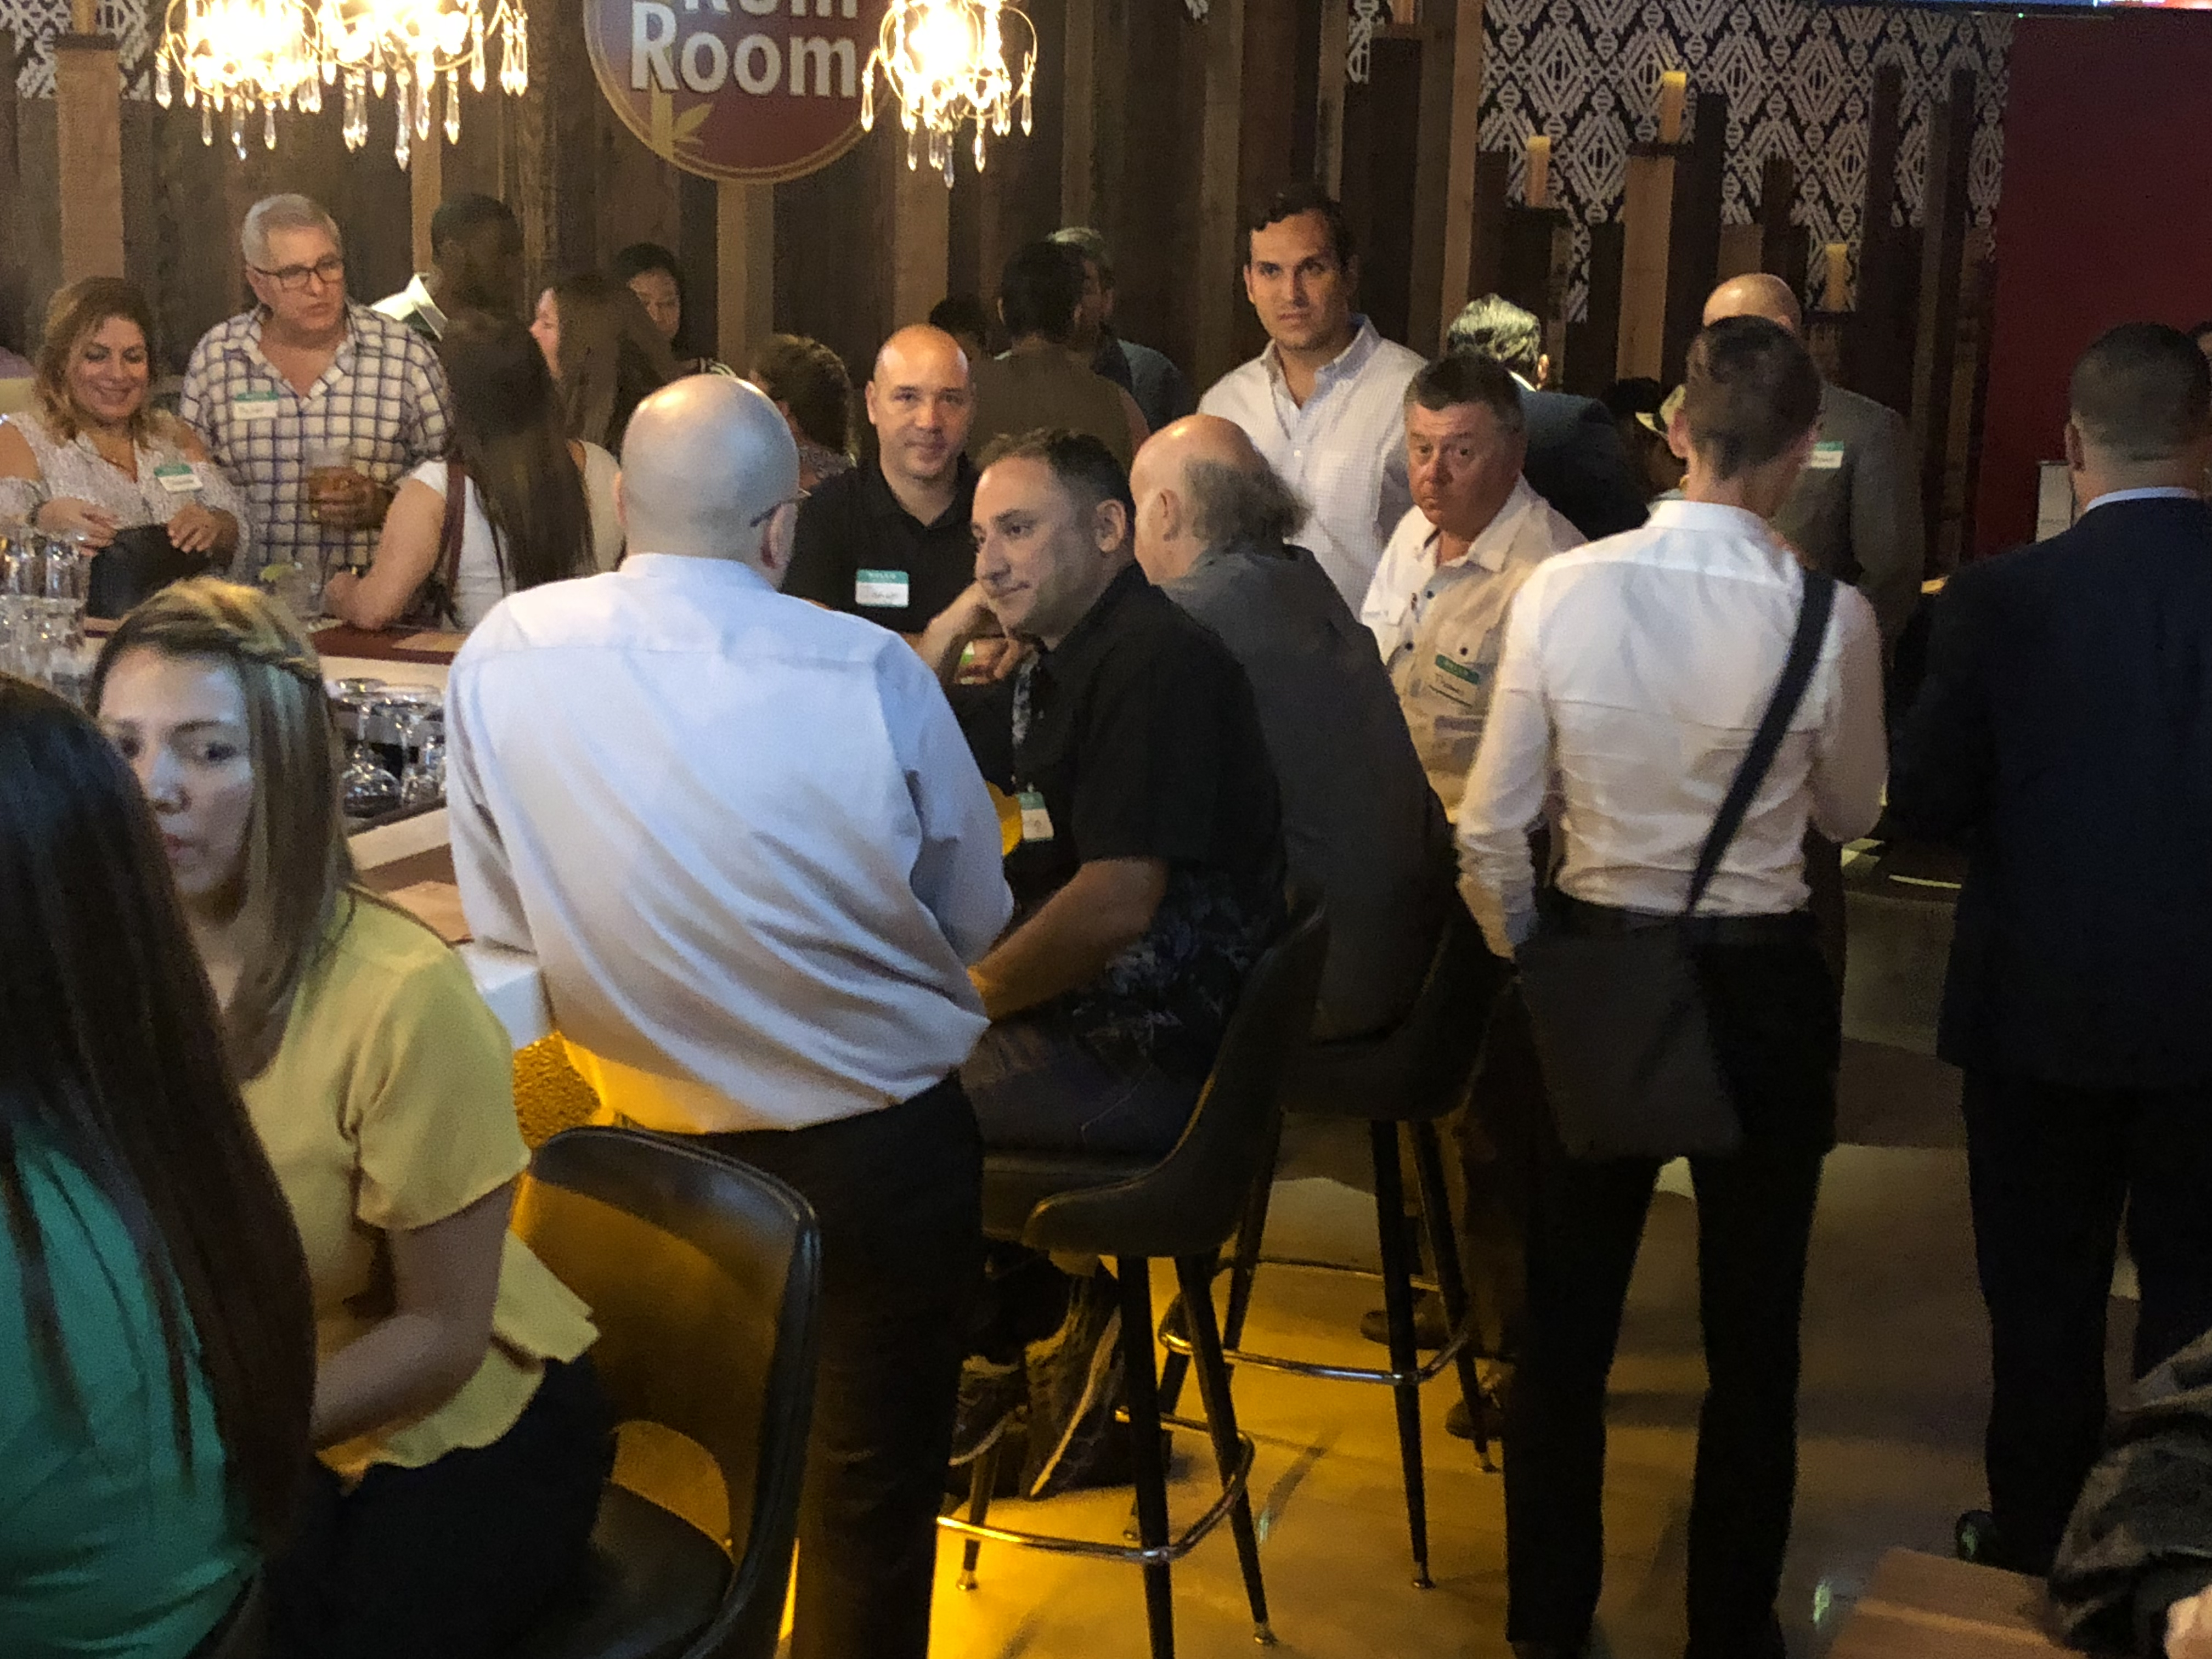 King's Bowl Business Networking at the bar, a Doral Chamber of Commerce event.